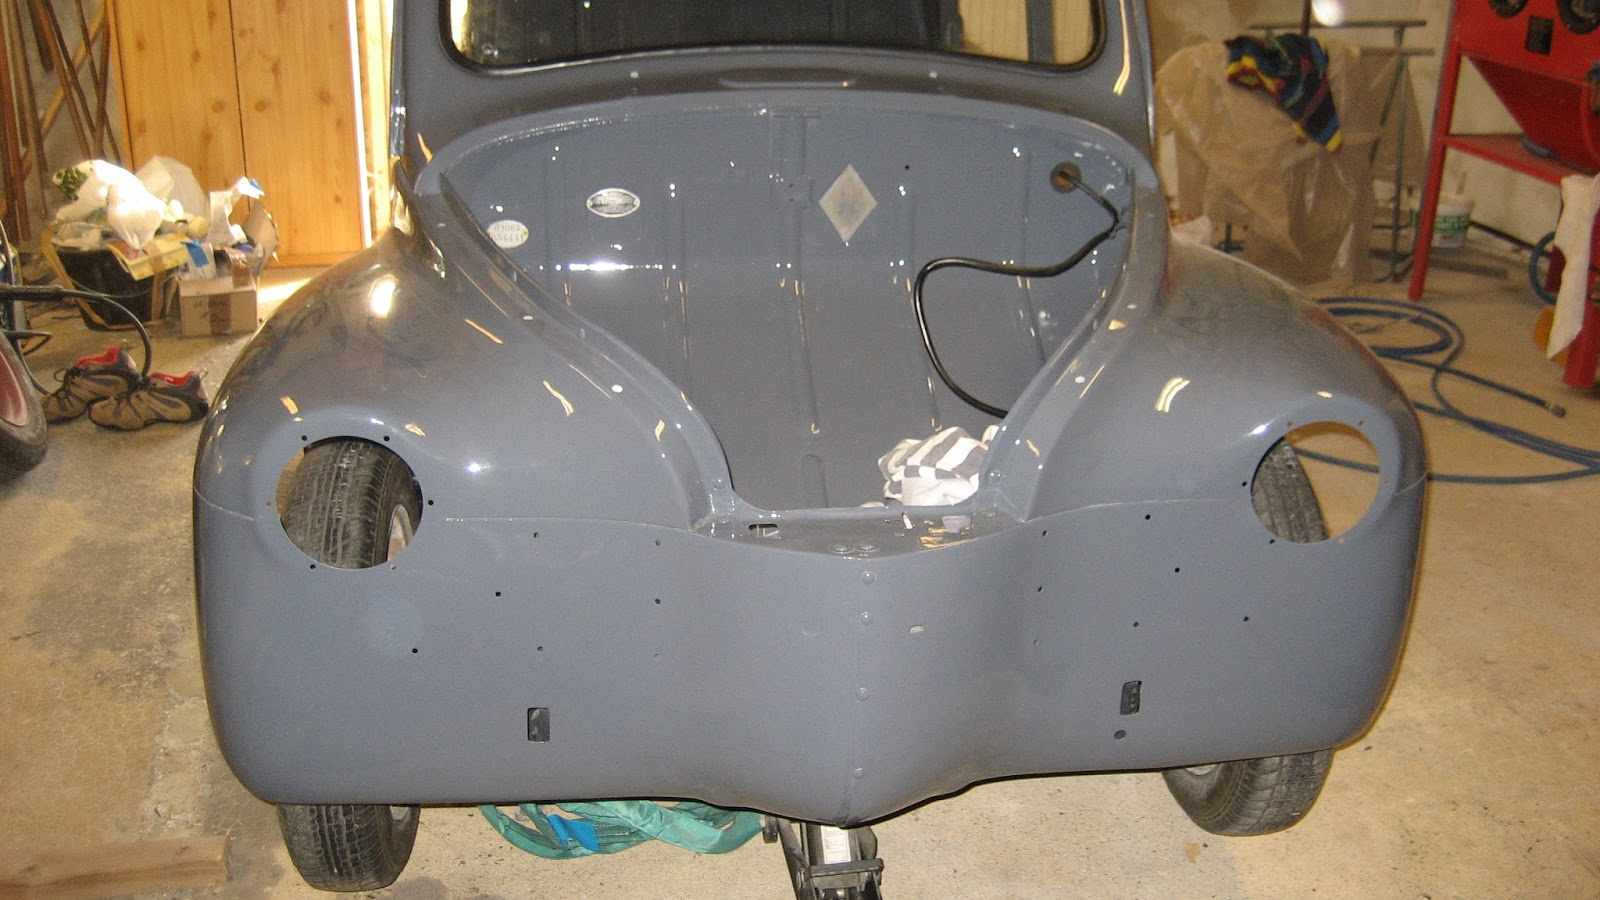 restauration d u0026 39 une renault 4cv affaire de 1956  avril 2016